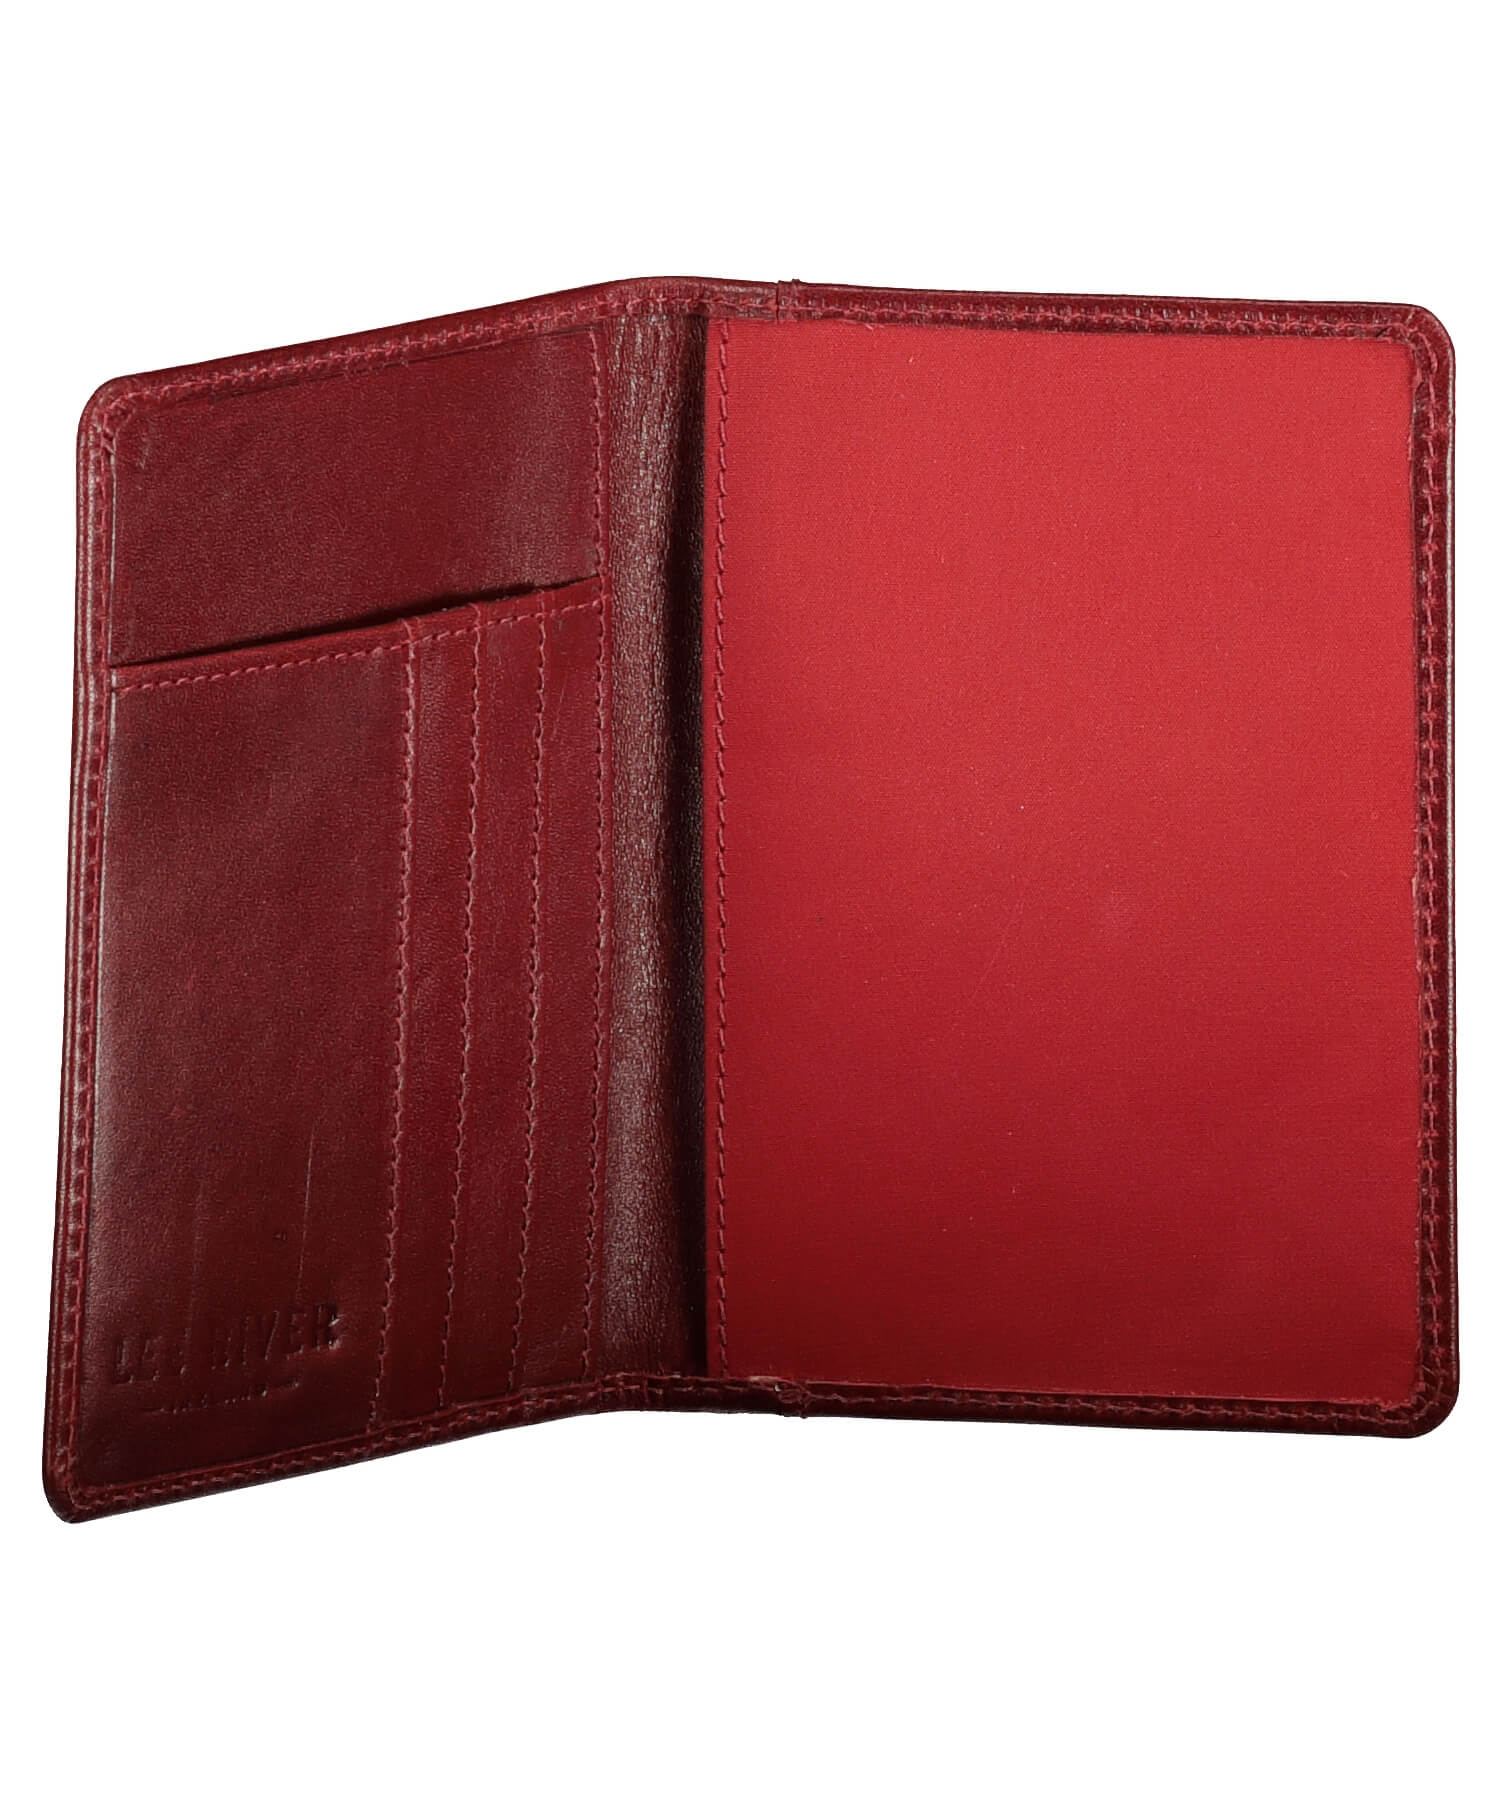 Passport Cover - Red - [Lee River] - Bags, Purses & Wallets - Irish Gifts